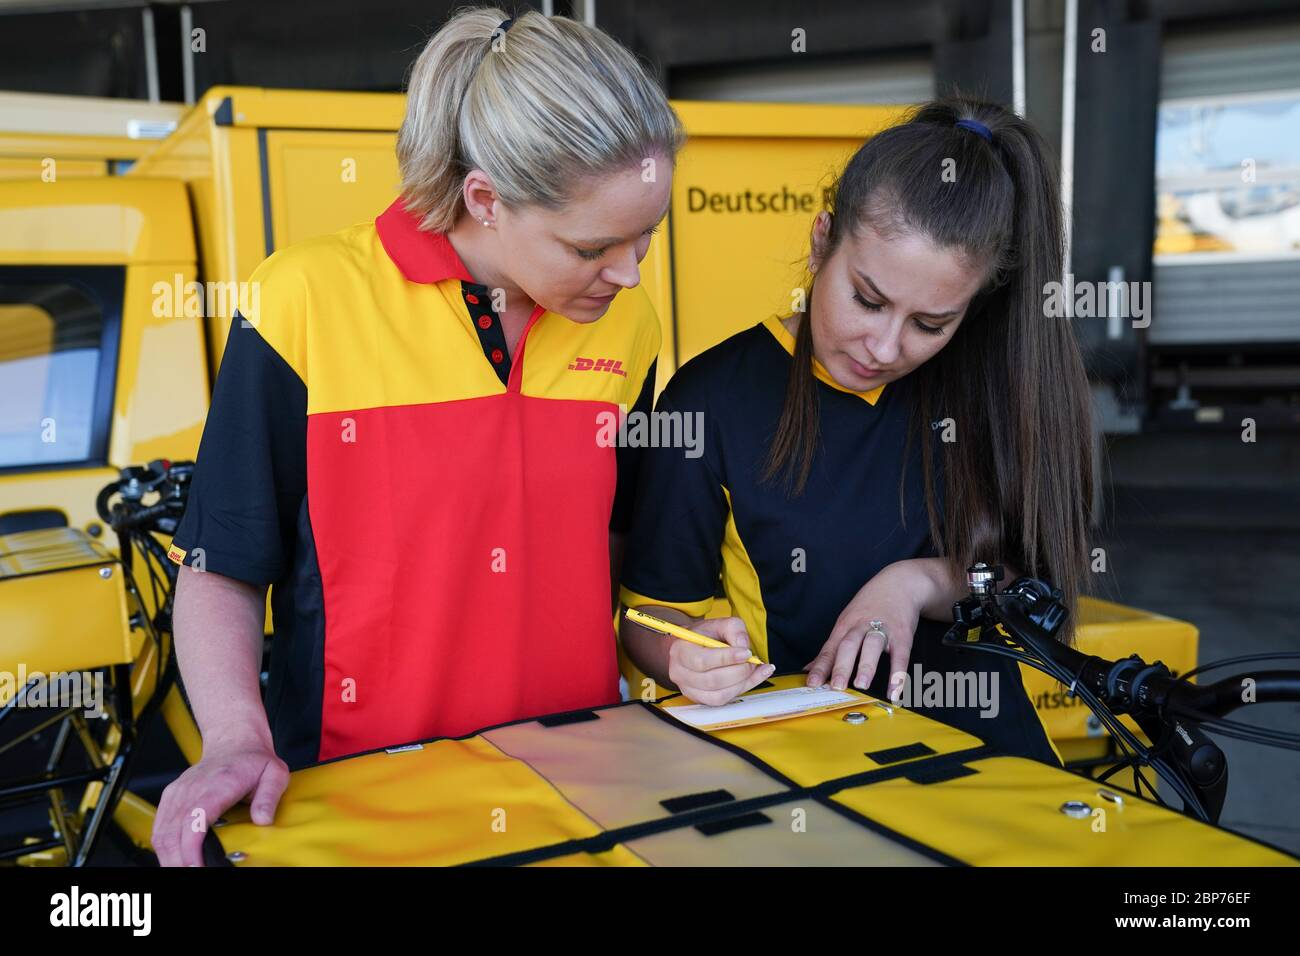 Fototermin '10.000ster StreetScooter bei Deutsche Post DHL Group' in Koeln Stock Photo